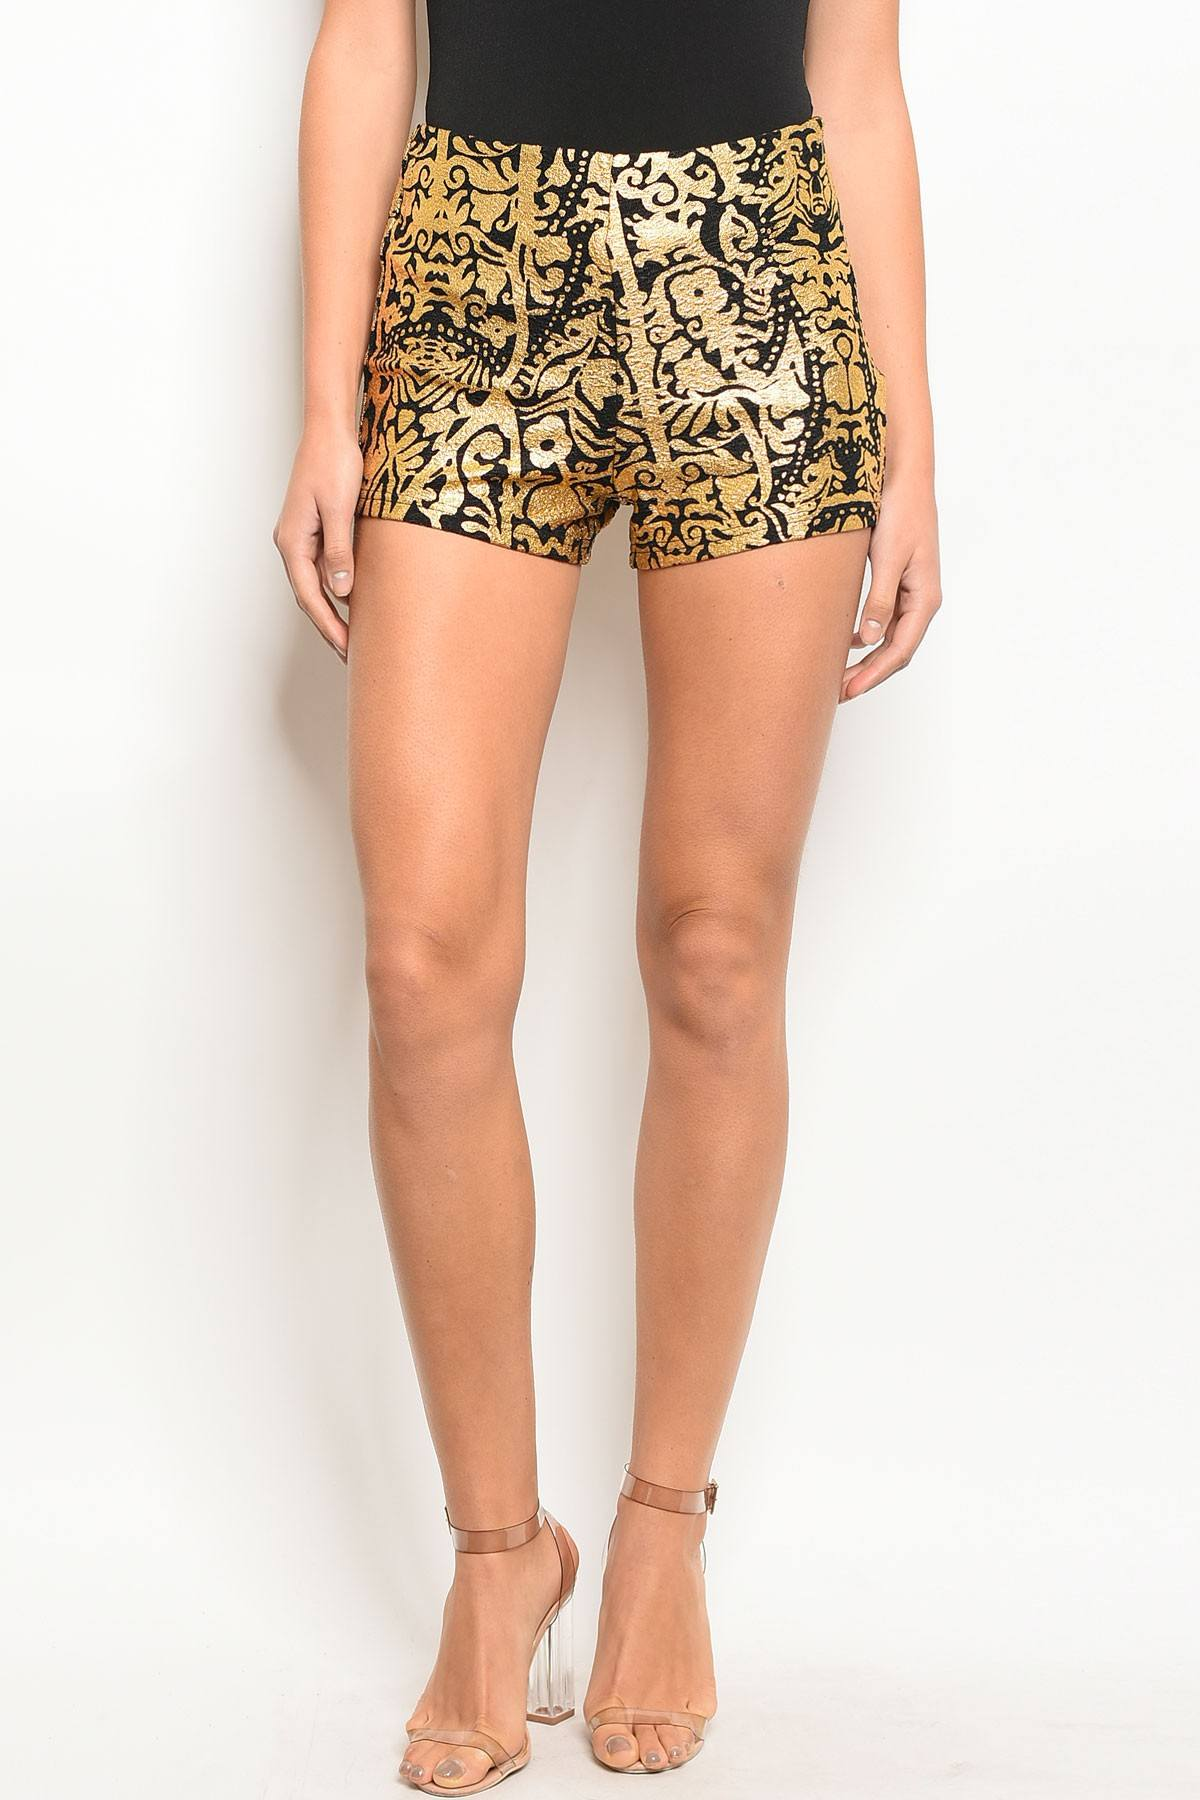 Ladies fashion black and gold detailed shorts with a zipper closure